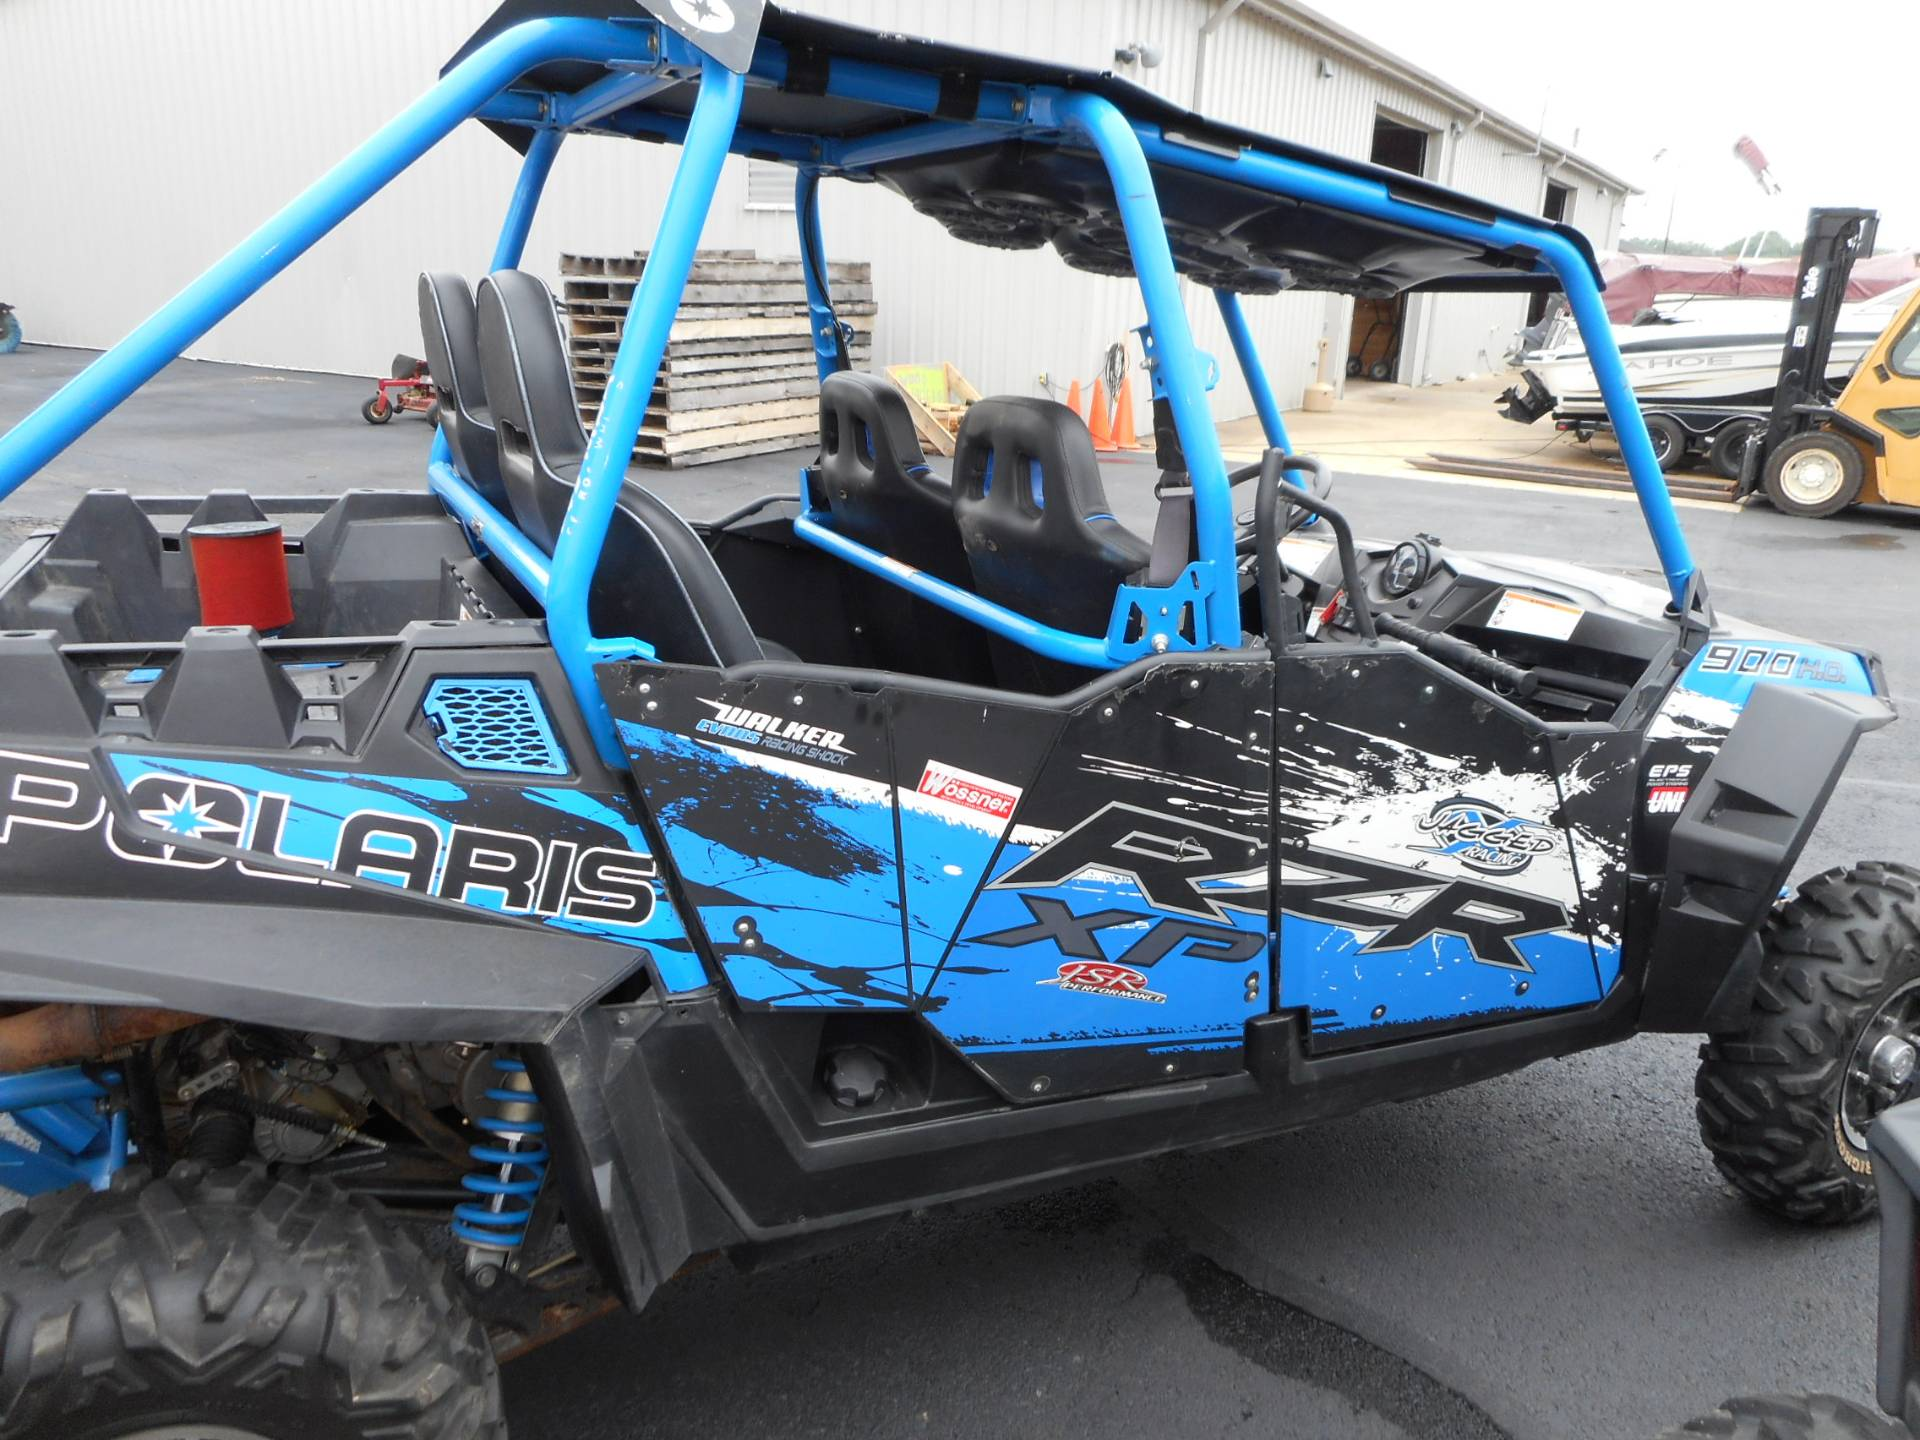 2013 Polaris RZR XP 900 H.O. Jagged X Edition 7